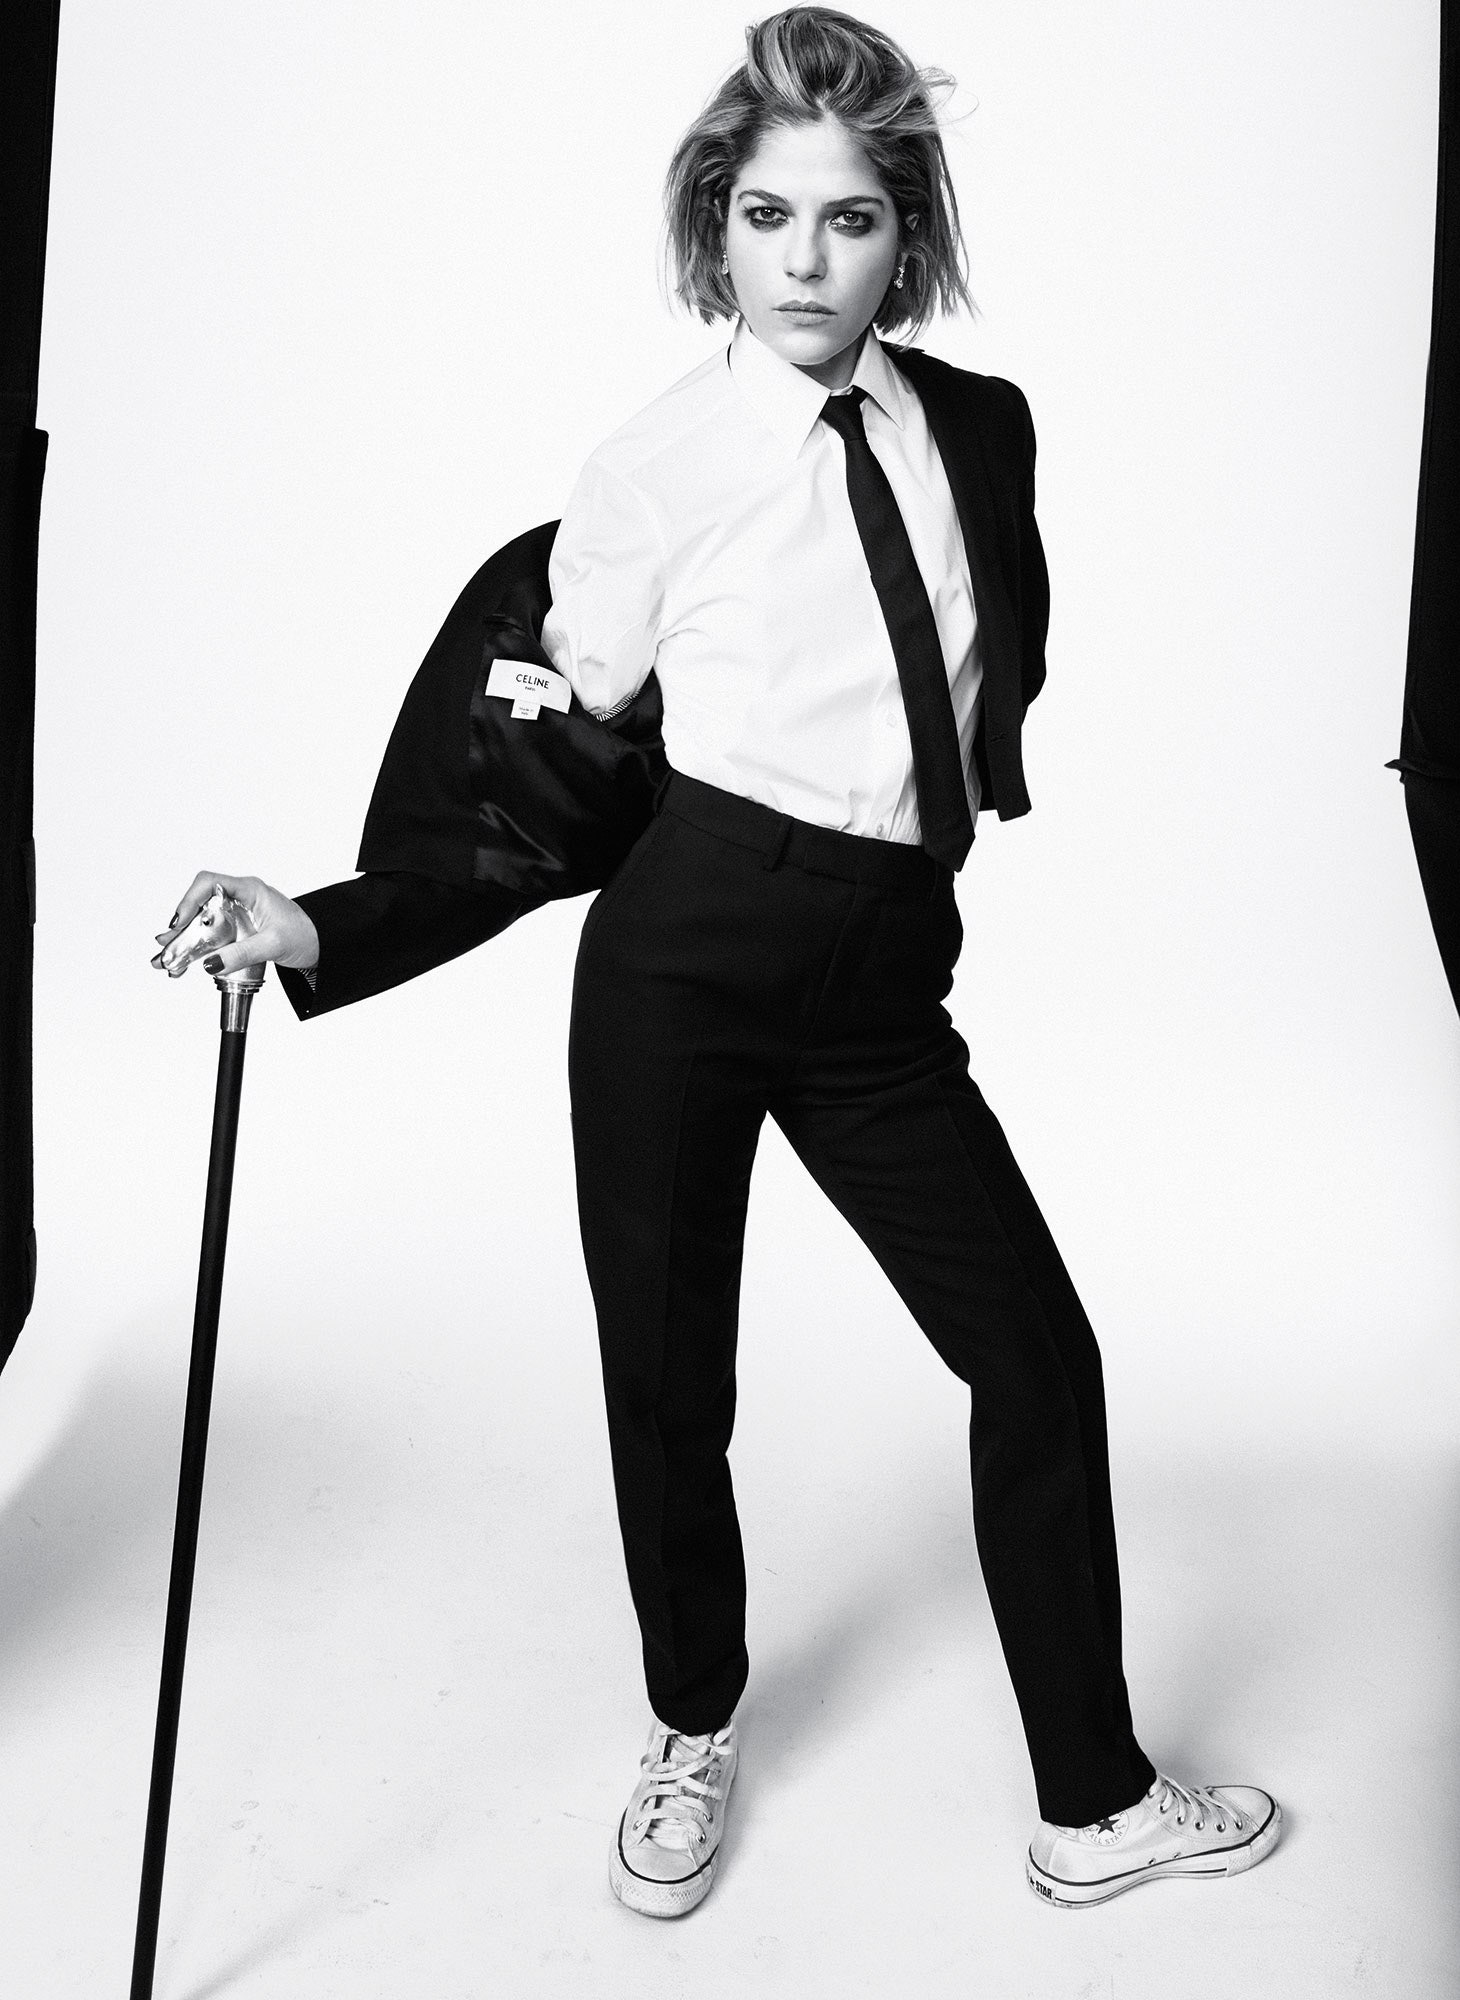 selma blair in a black suit using a cane